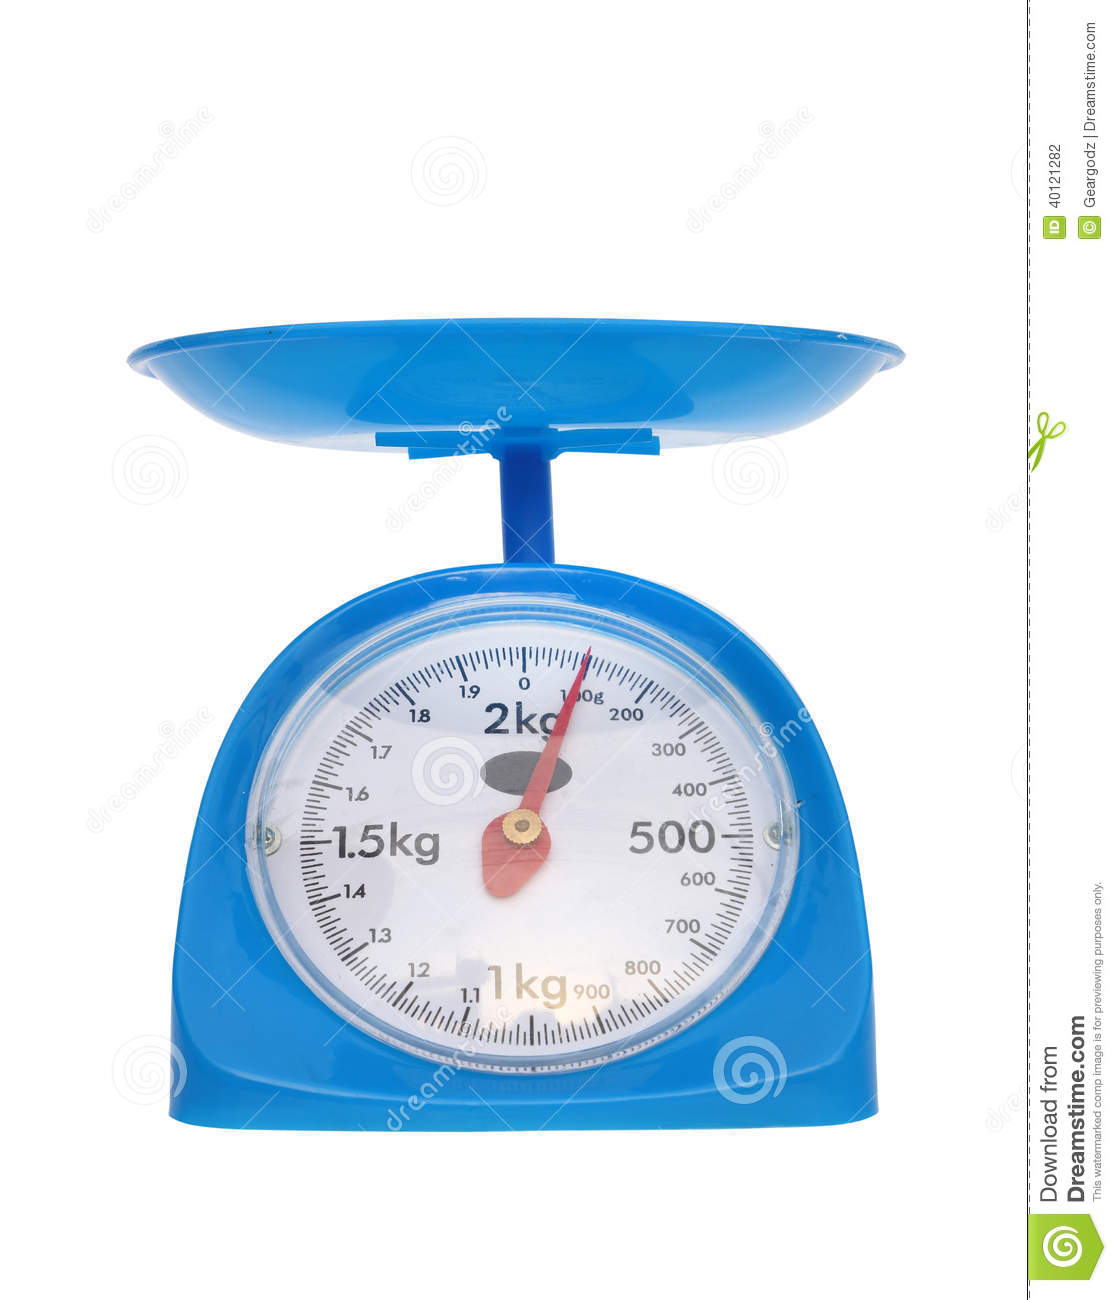 269 Measurement free clipart.